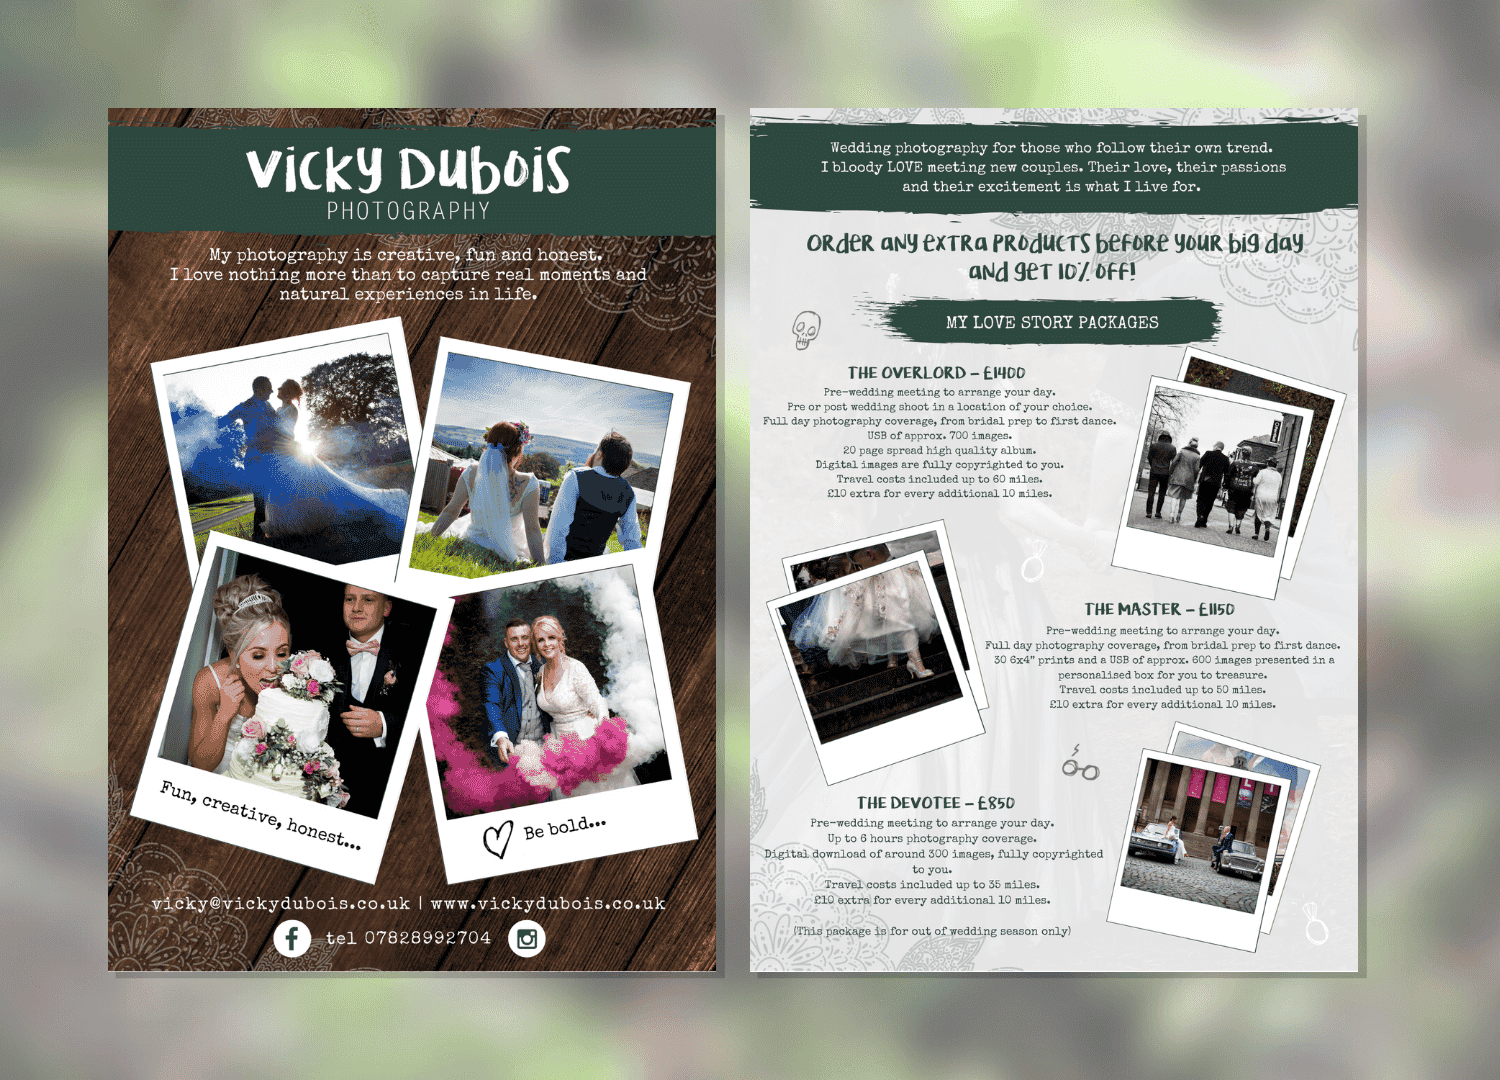 Image shows a flyer design for Vicky Dubois photography